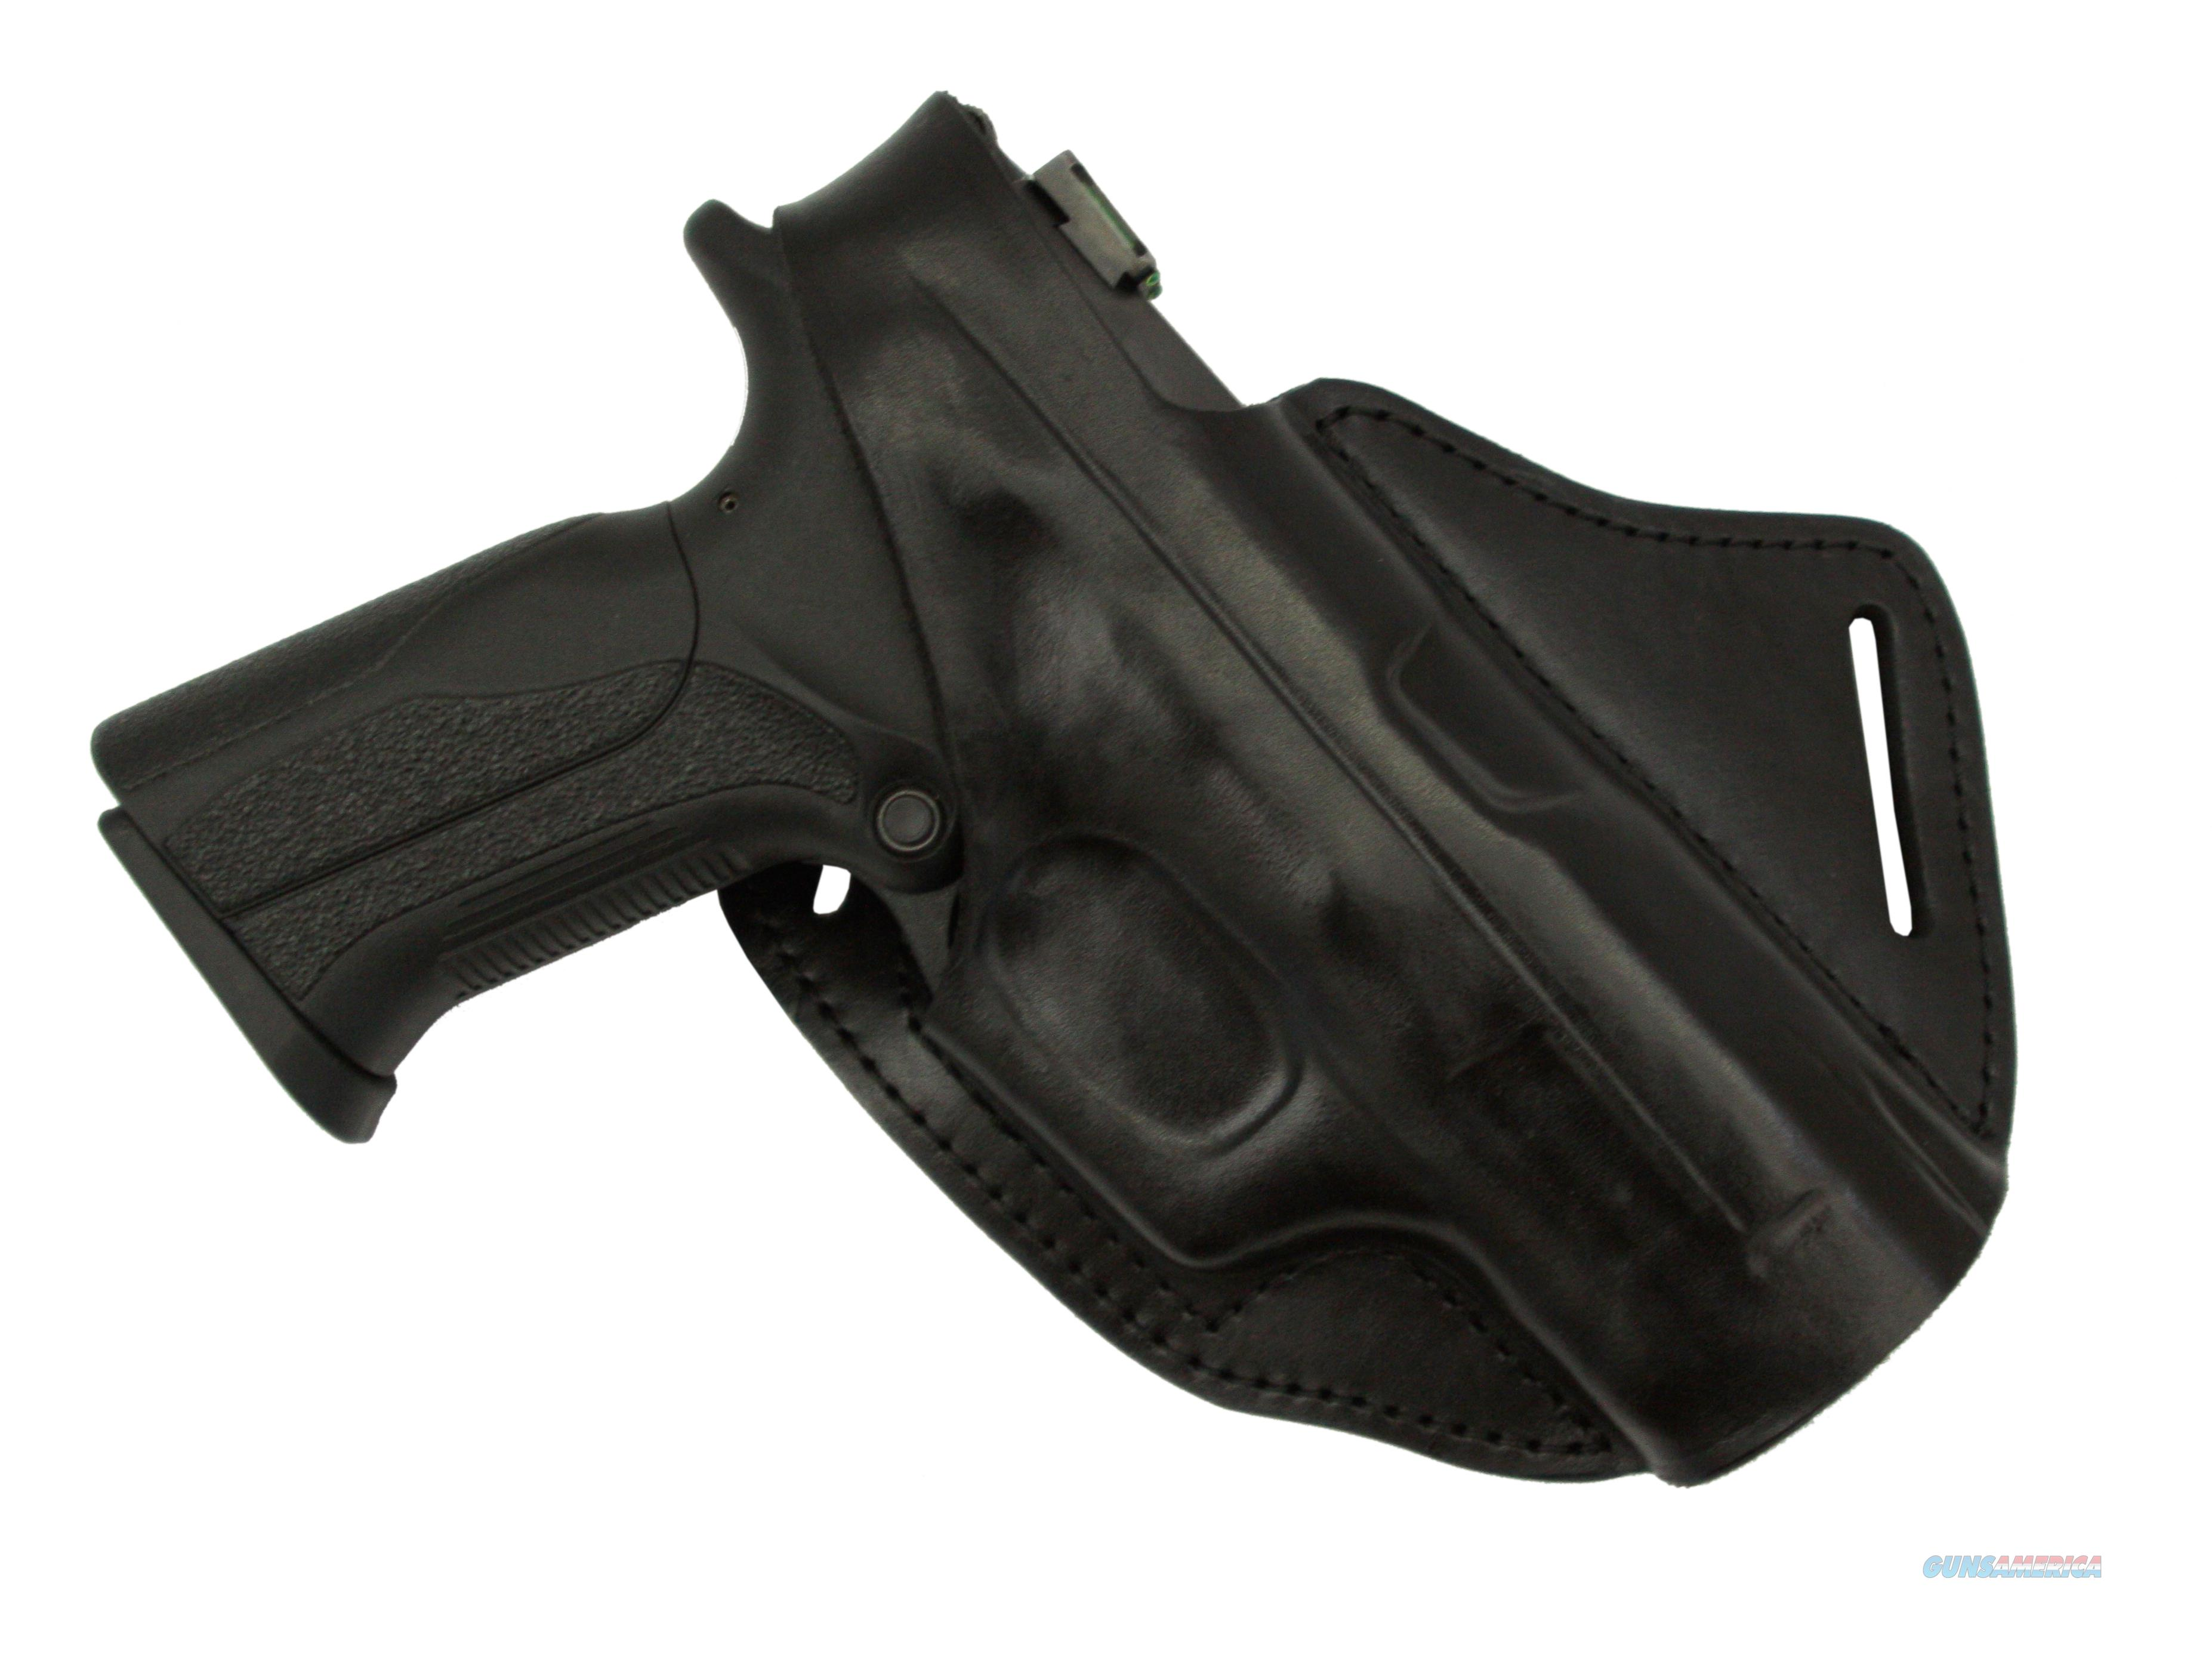 Cross Draw leather belt holster CZ 75, 75B, 85, 85B  Non-Guns > Holsters and Gunleather > Concealed Carry